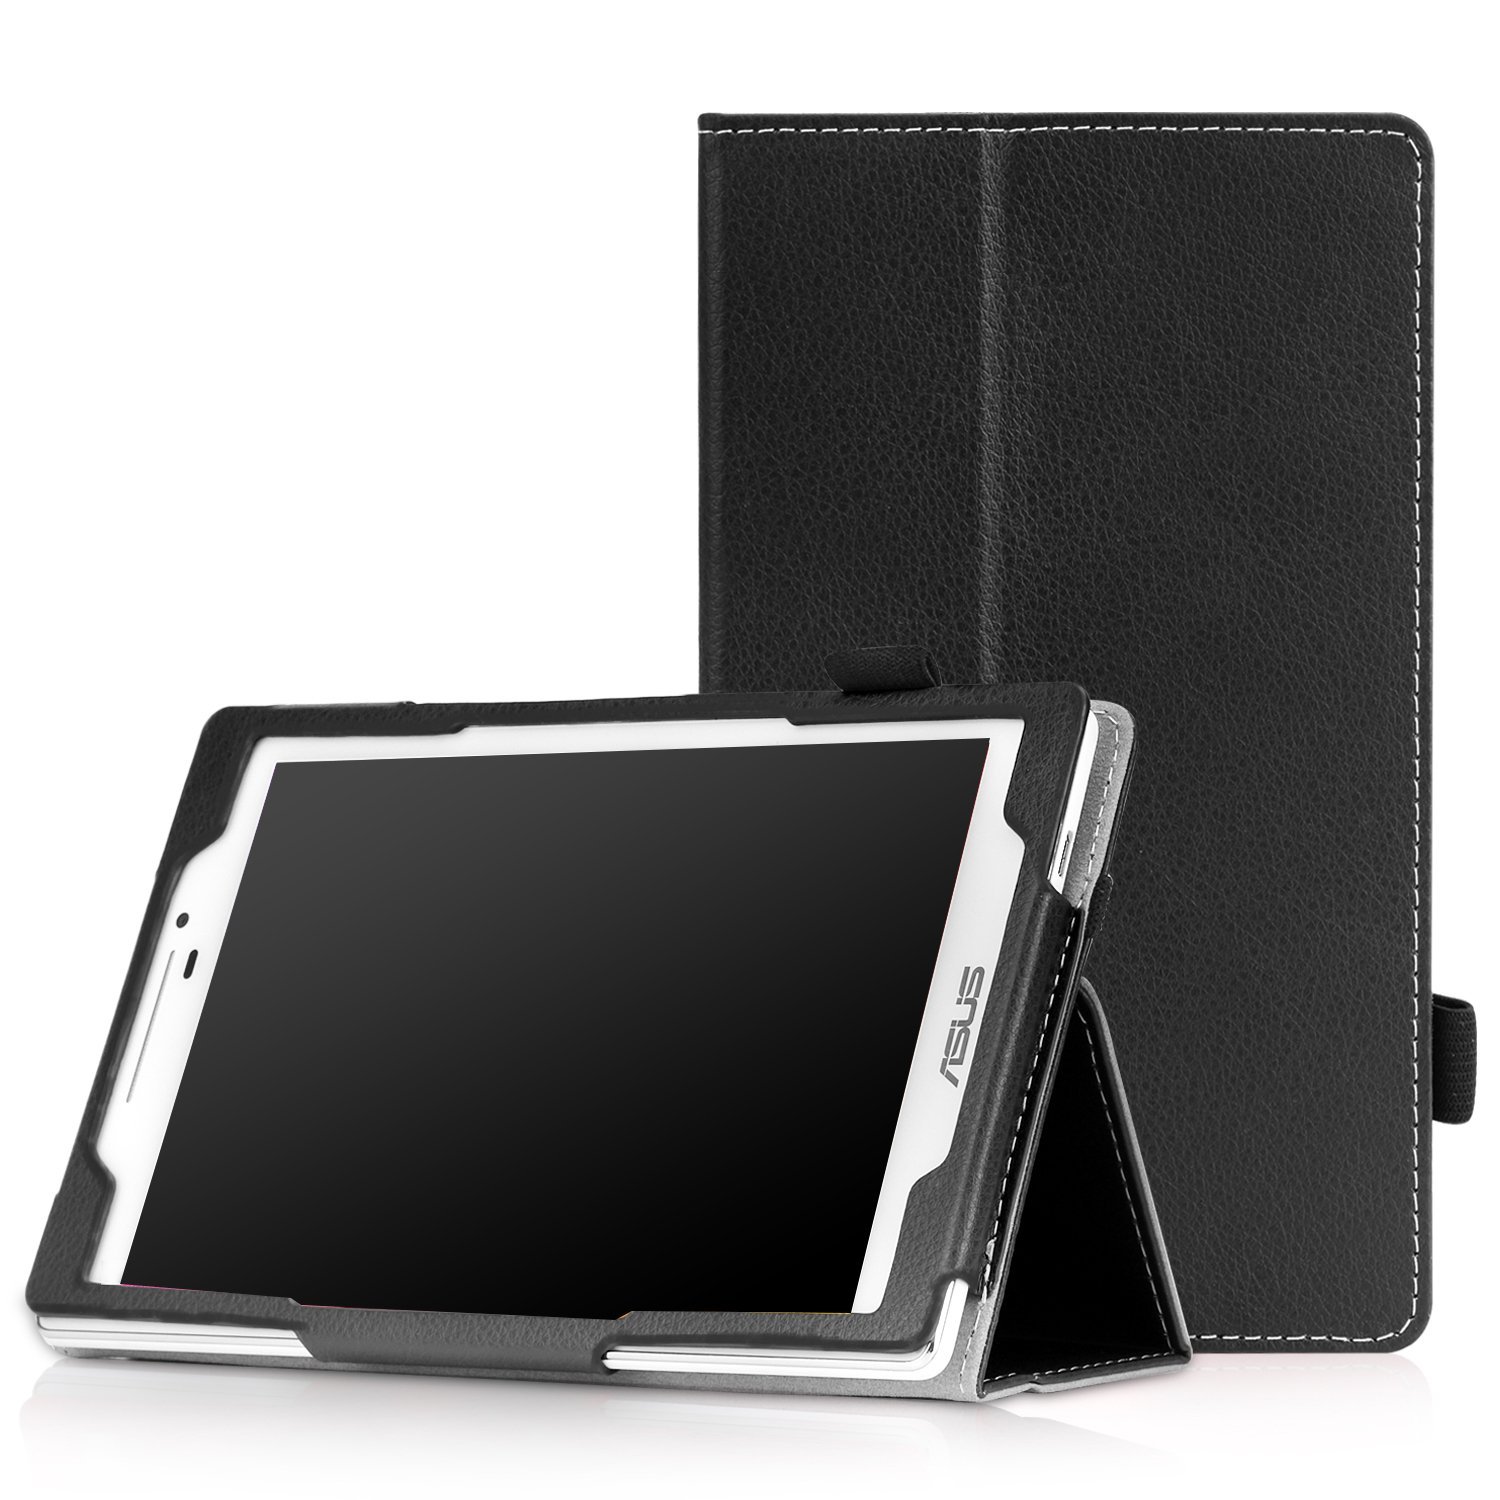 best loved 8fae5 465c3 MoKo ASUS ZenPad Z 7.0 Z170C Case - Ultra Compact Lightweight Protection  Slim Folding Cover Case for 2015 Release ASUS ZenPad C 7.0 Z170C / Z170CG /  ...